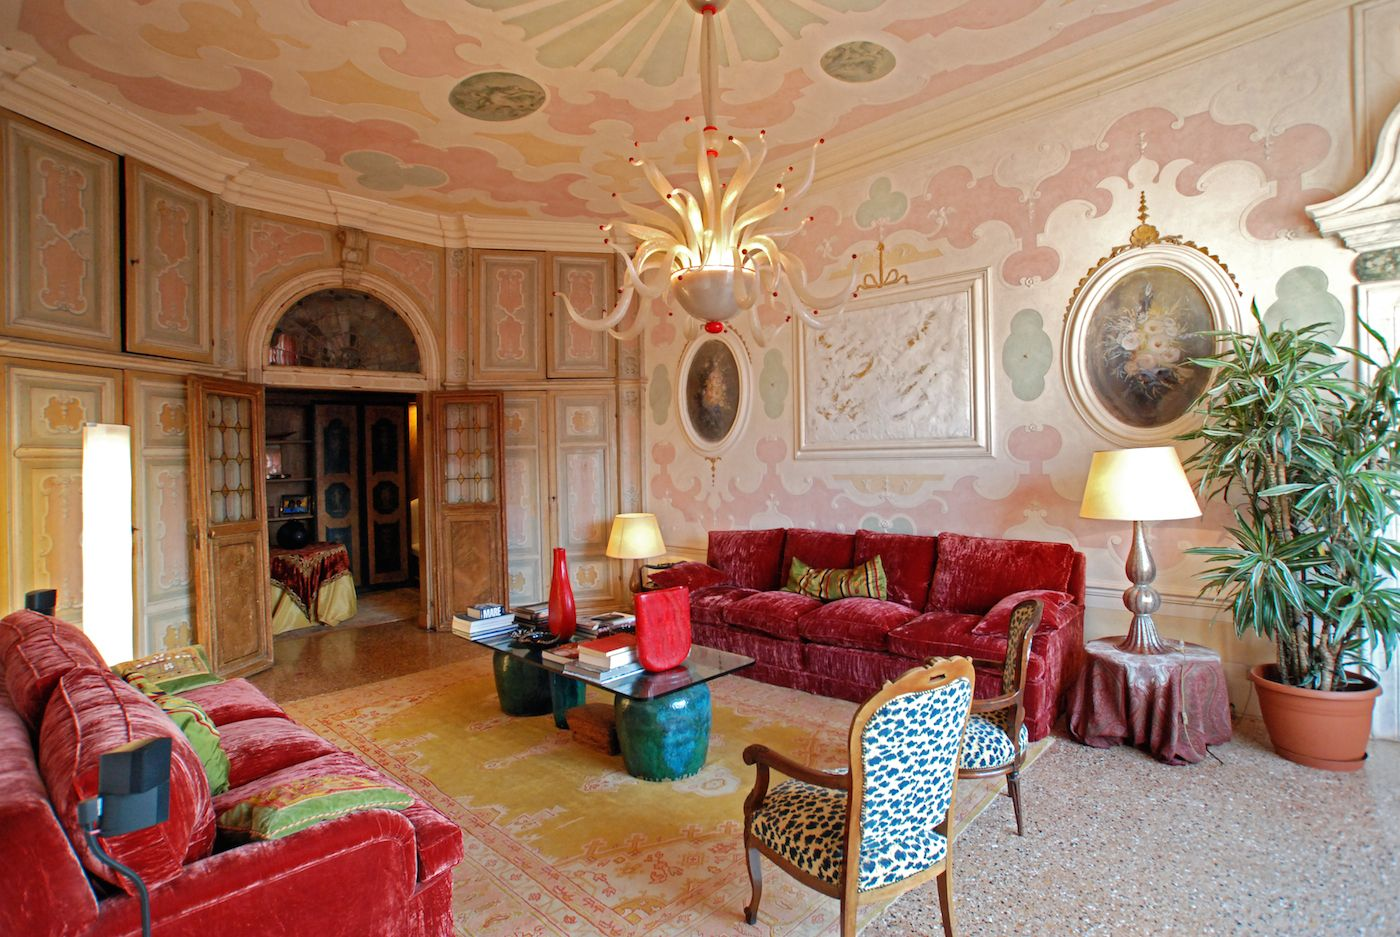 a breathtaking living room with stuuccoes and frescoes